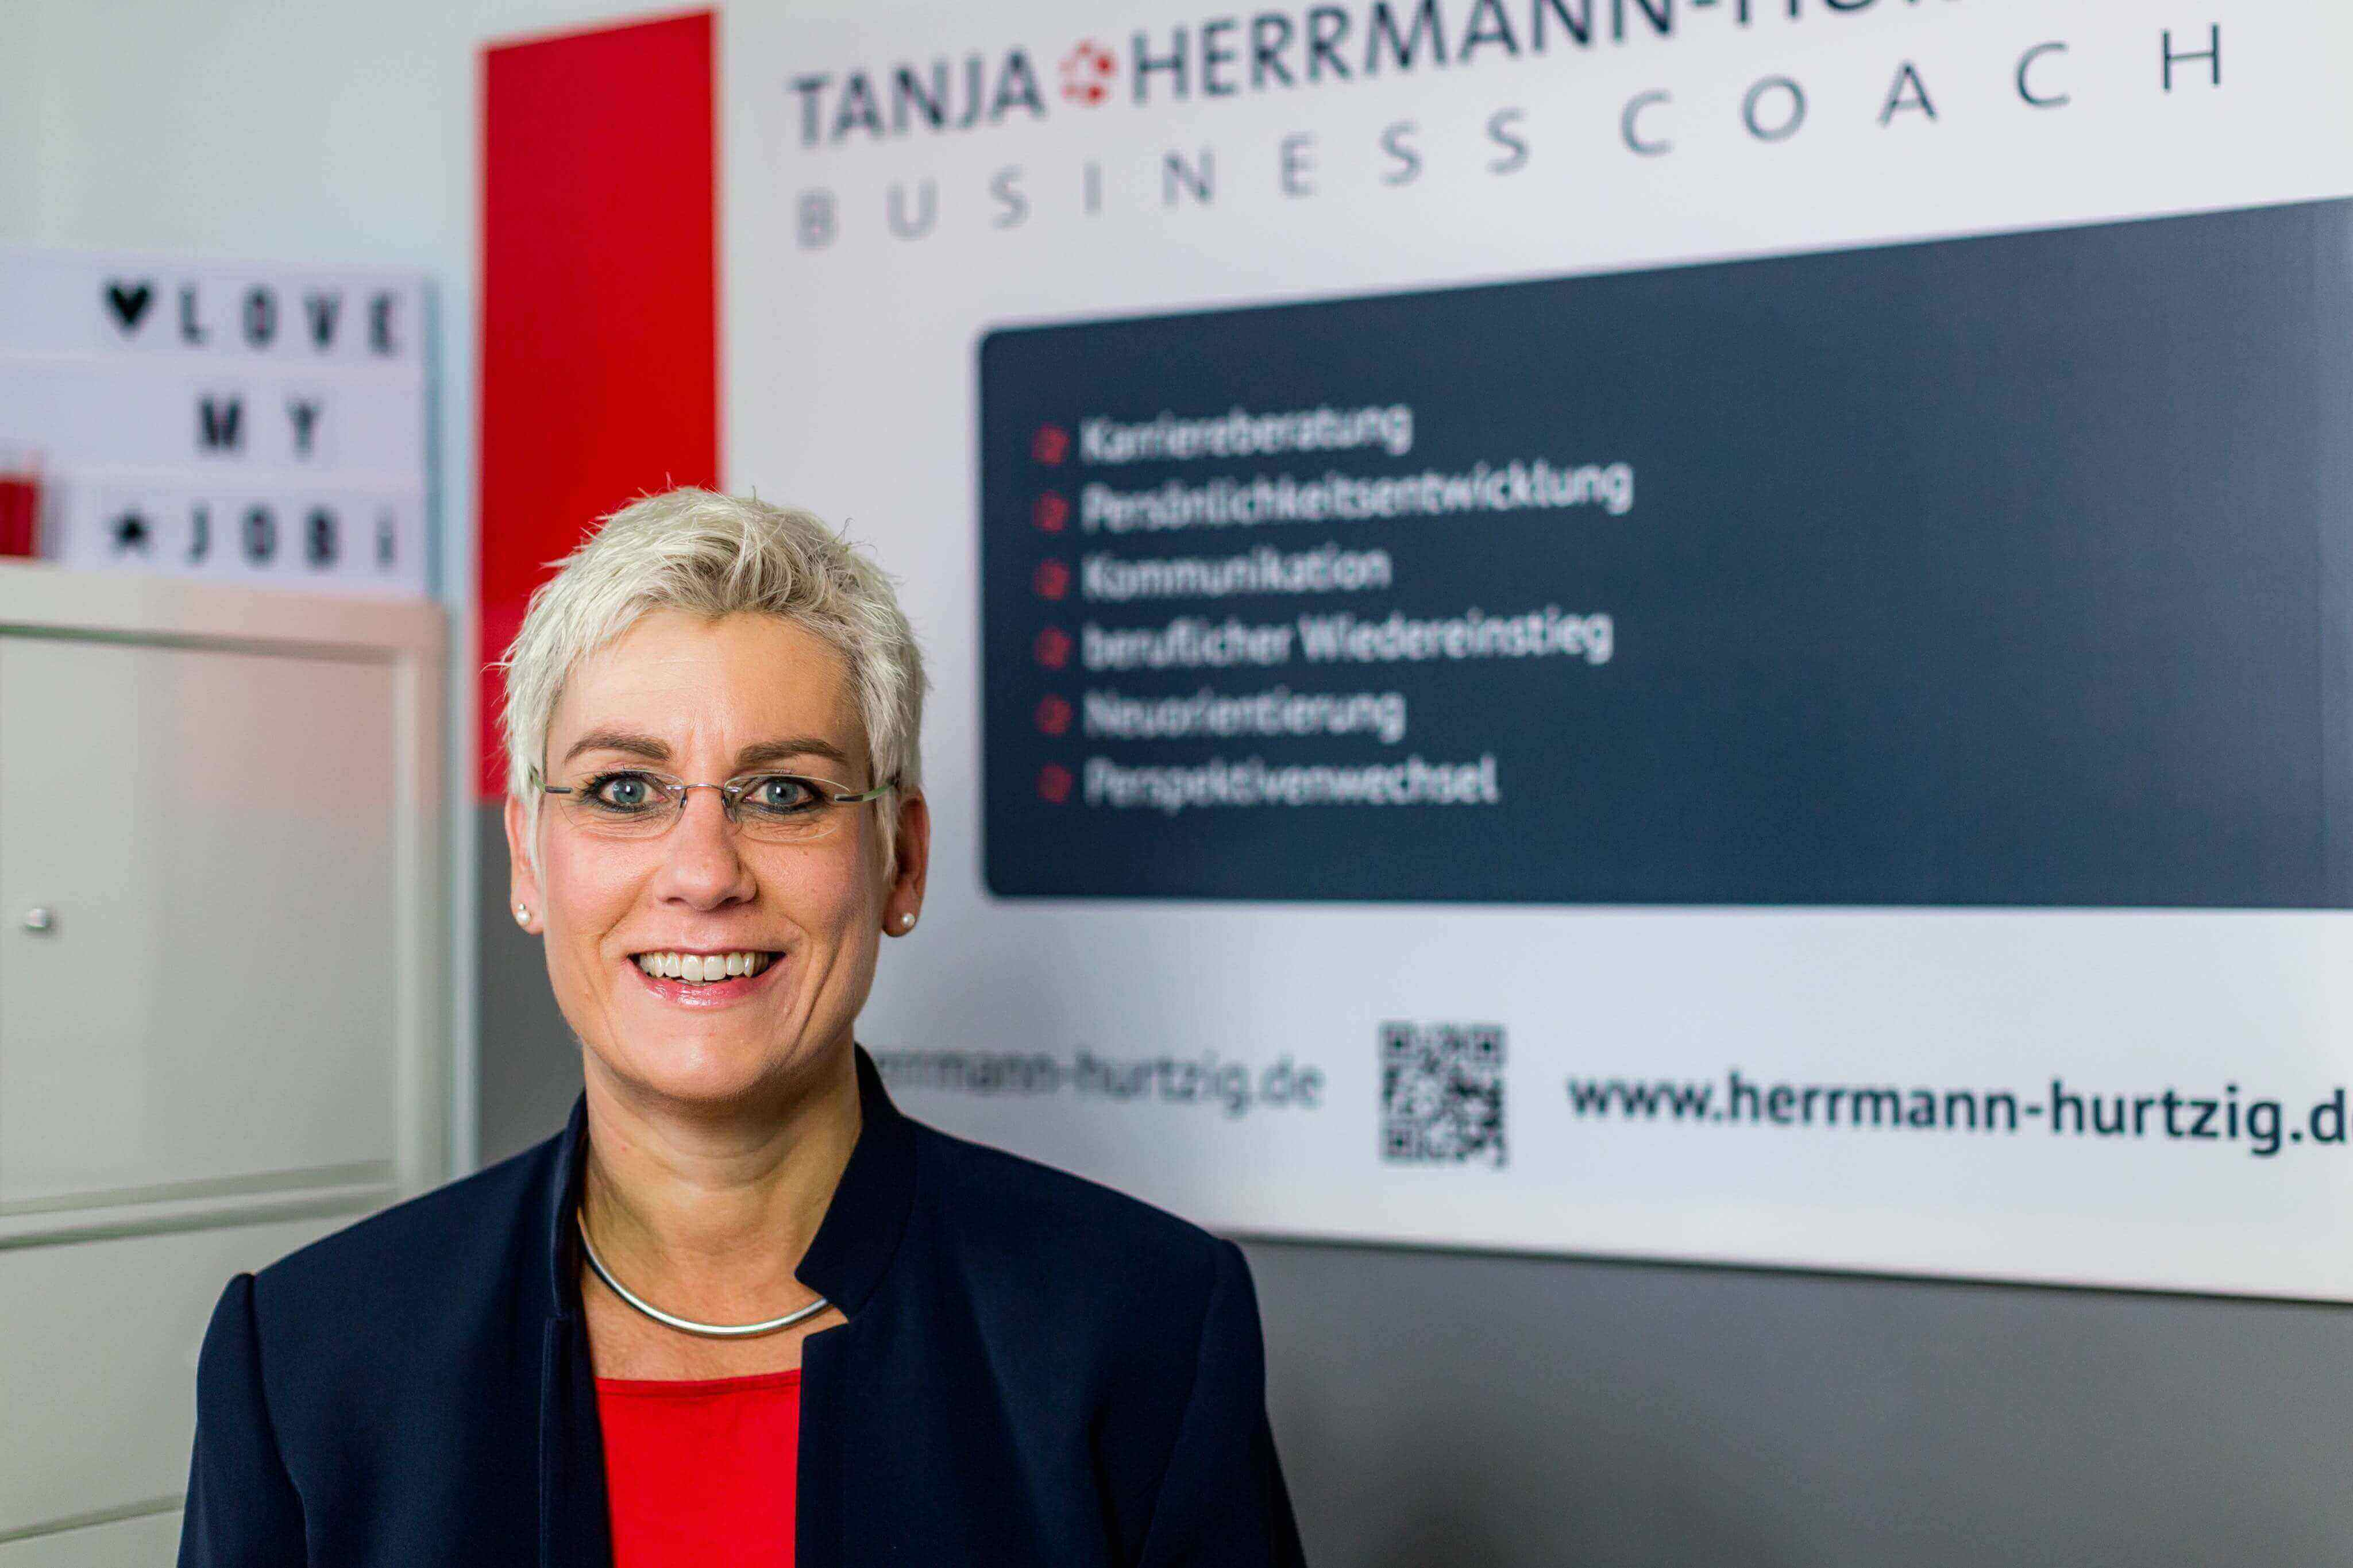 Tanja Herrmann-Hurtzig Business Coach